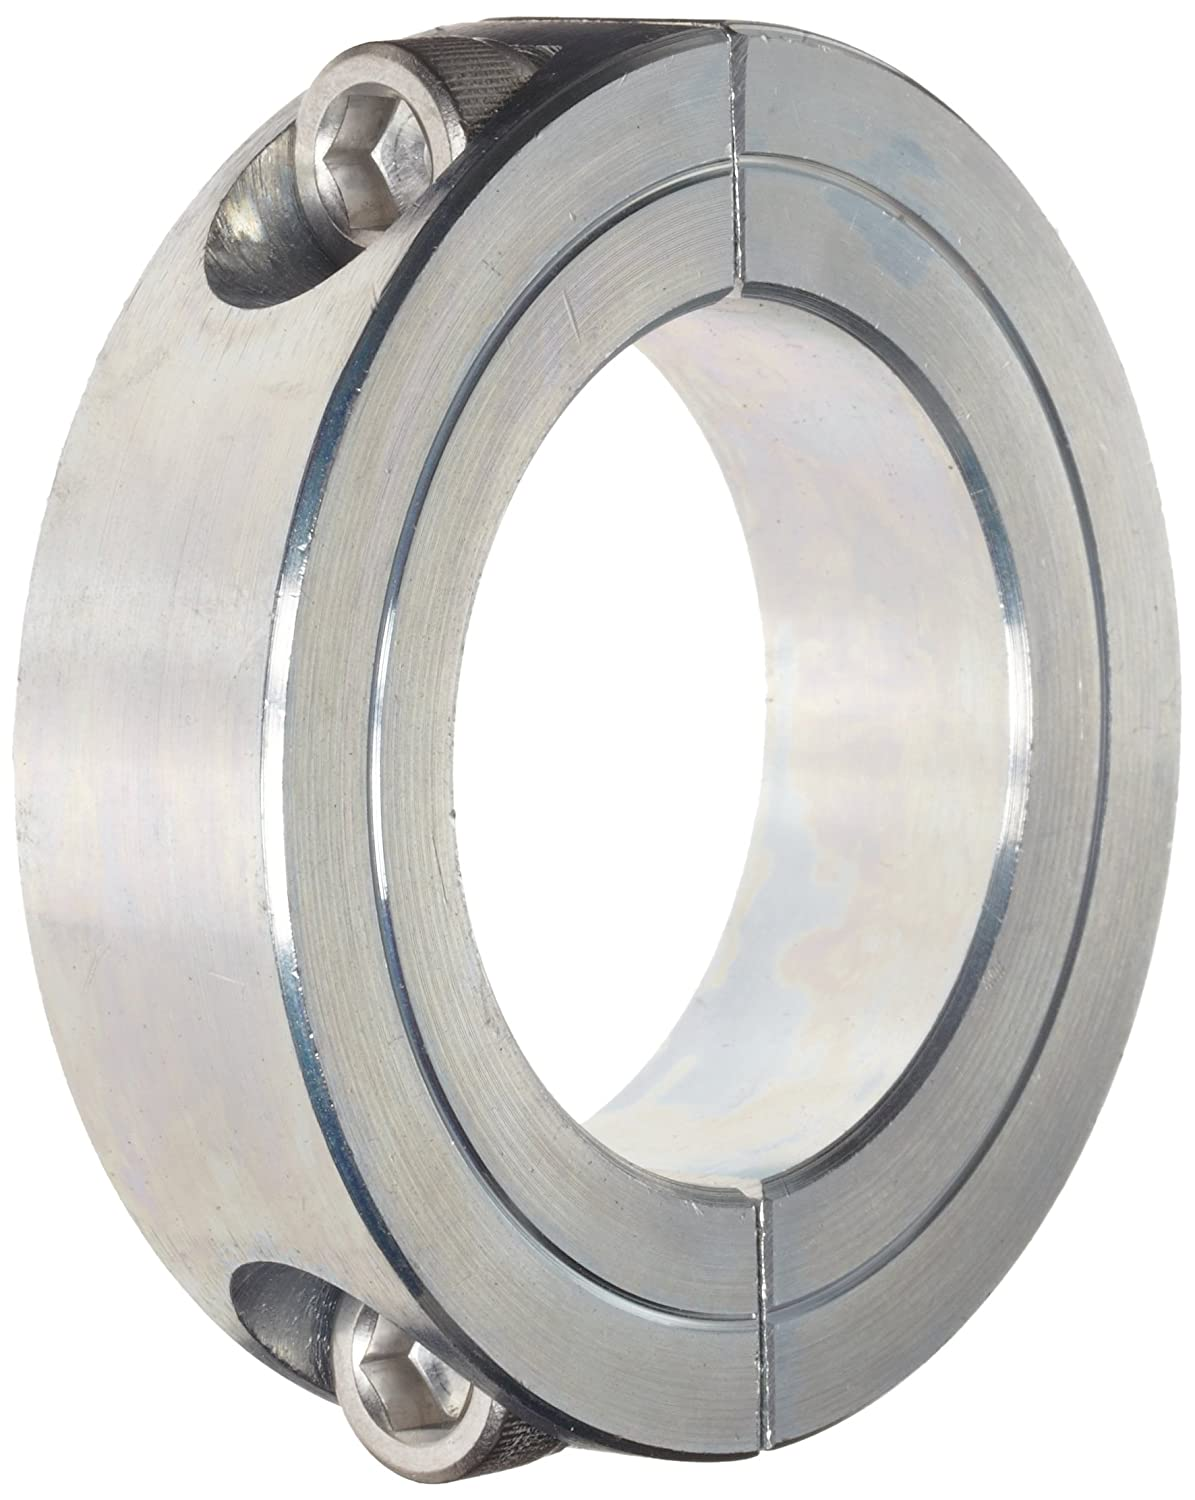 15//16 OD Climax Metal 2C-043-Z Two-Piece Clamping Collar Zinc Plating Steel 7//16 Bore 3//8 Width